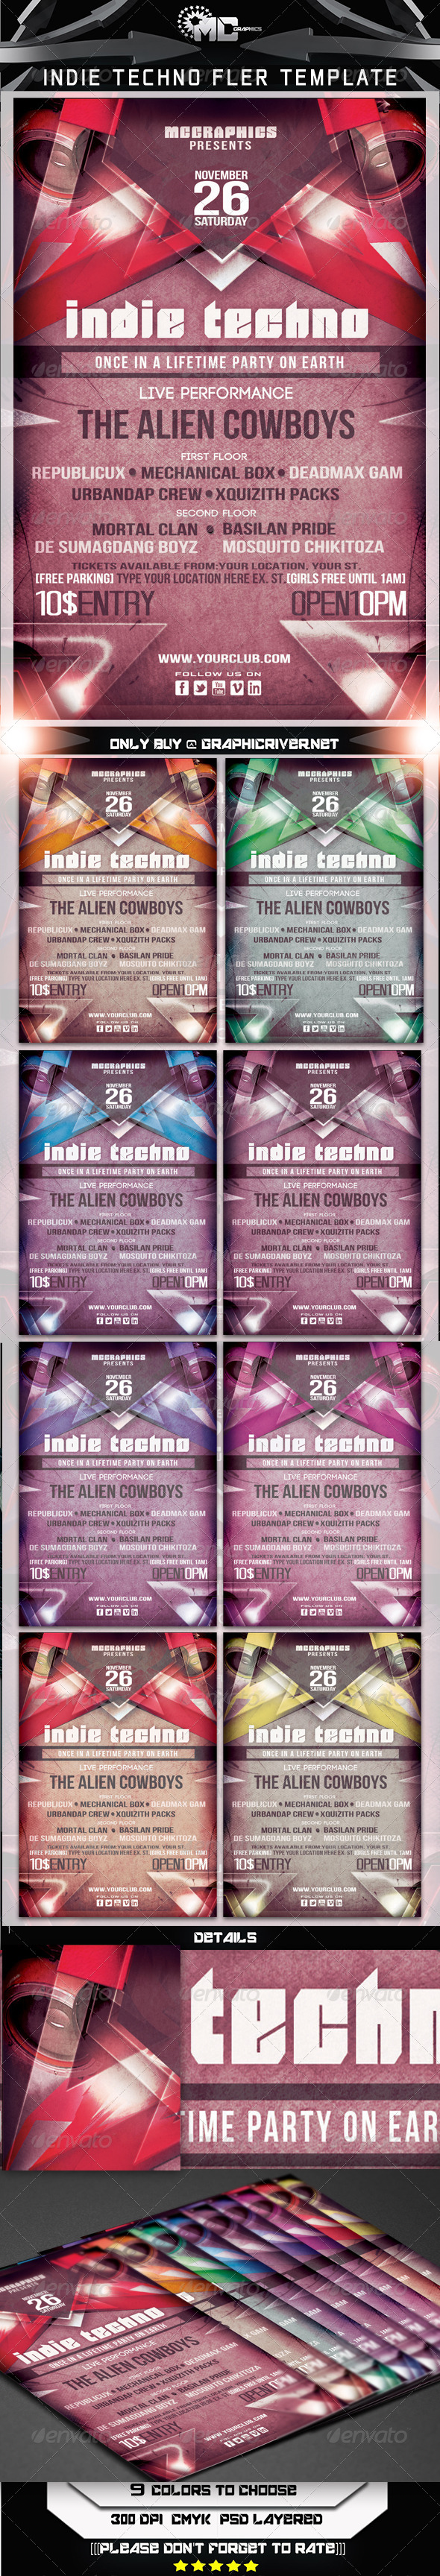 GraphicRiver Indie Techno Flyer Template 5969617